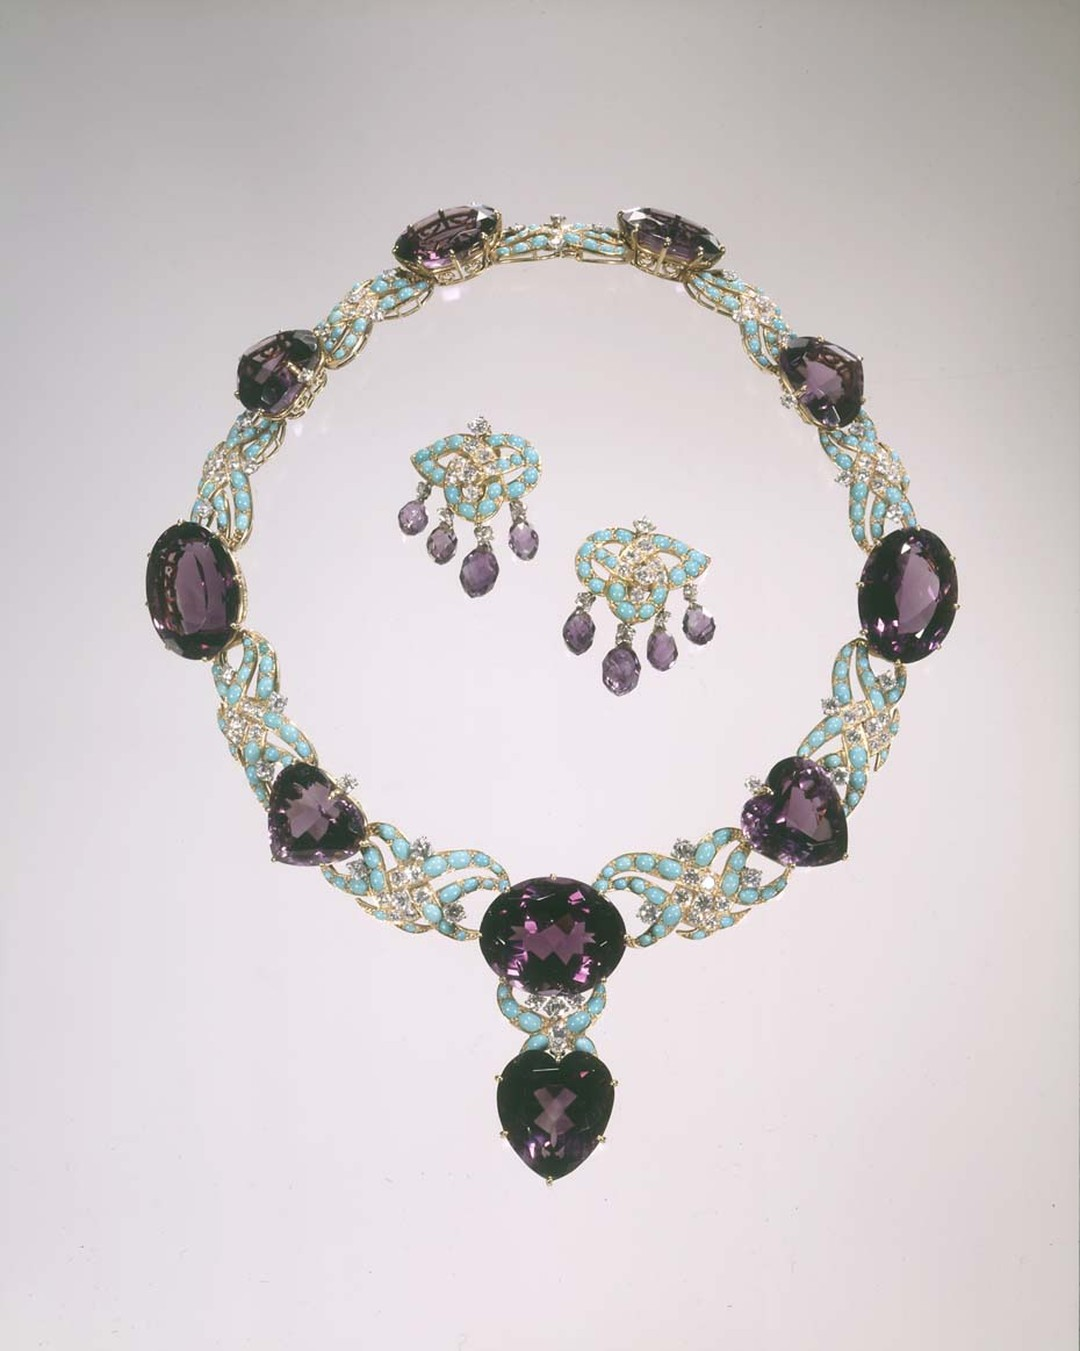 Cartier 1950-51 platinum and gold necklace and earrings with amethysts, turquoise and diamonds. Image: Courtesy Hillwood Estate, Museum and Gardens